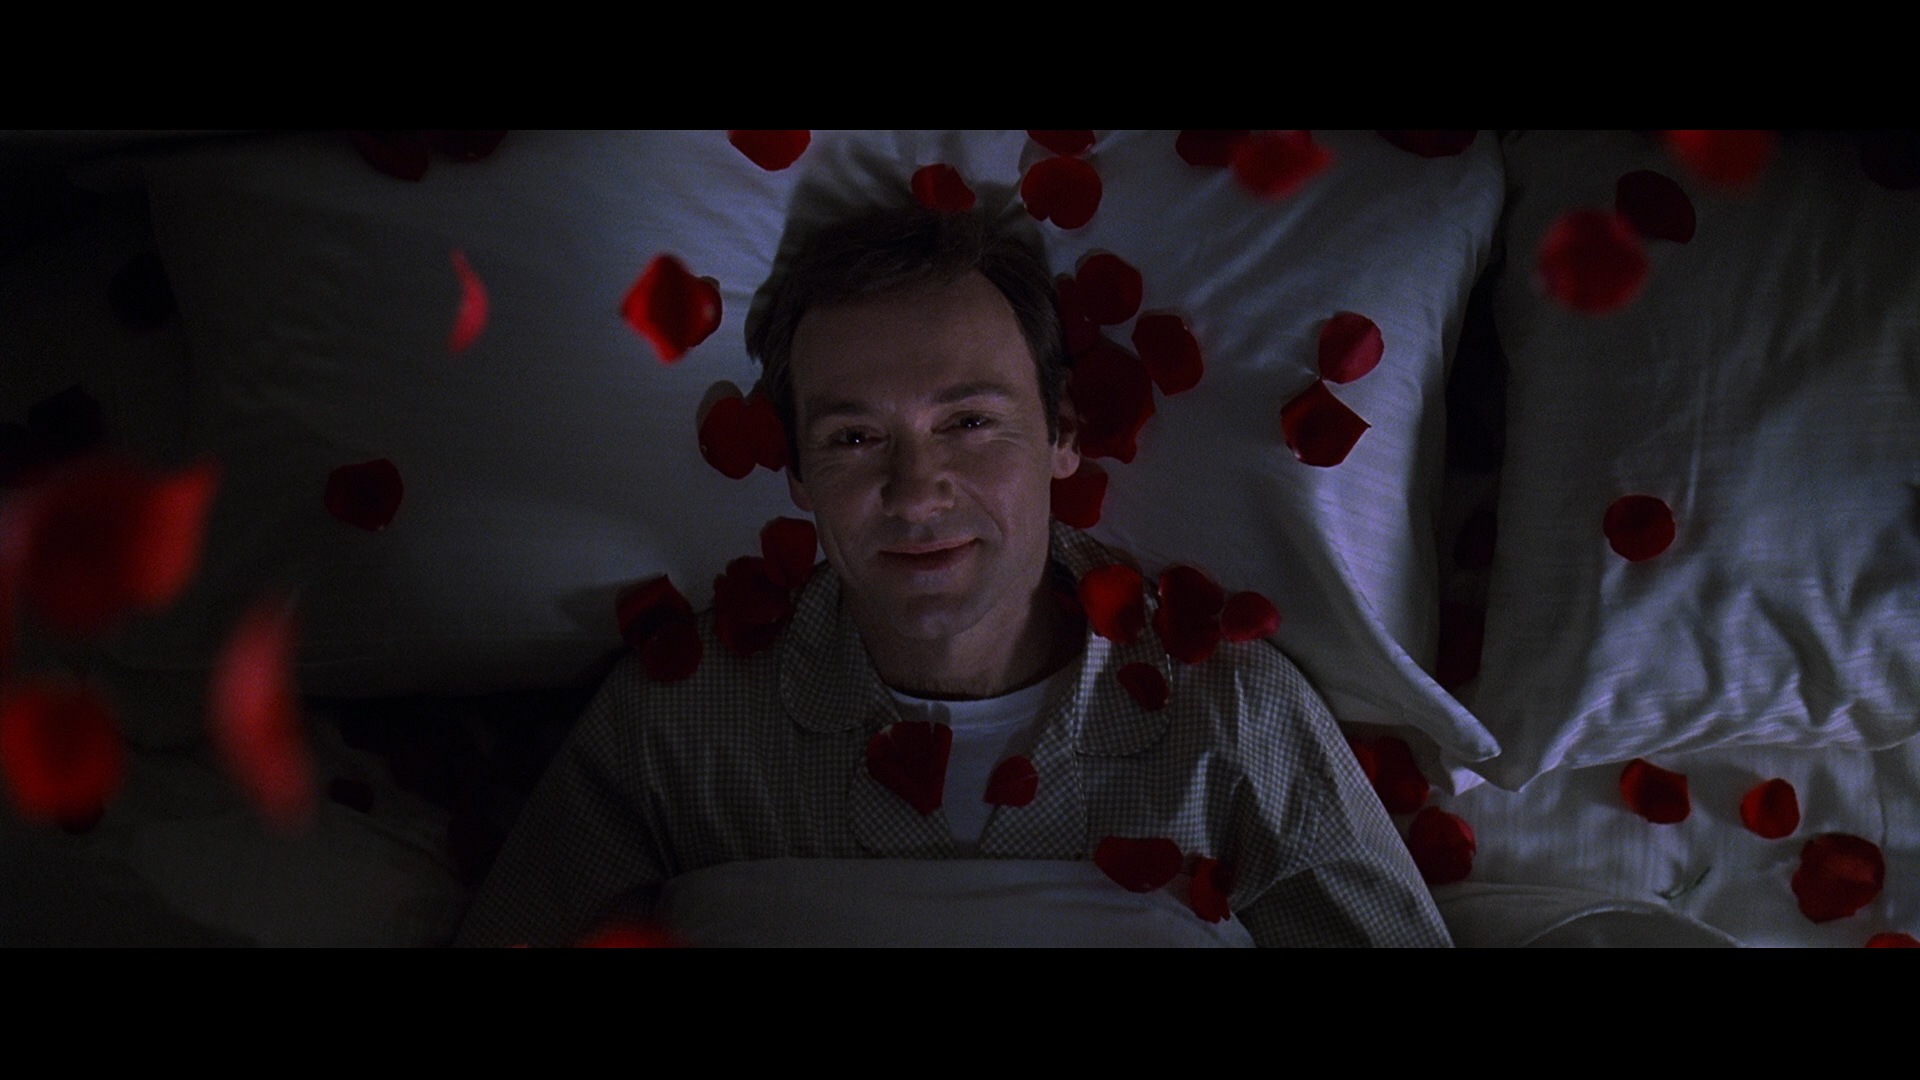 interpersonal conflict in film american beauty Title: tv reality shows commentary: beginning with the real world in the 1990s, many so-called reality shows have allowed viewers to watch people create, maintain, and end interpersonal relationships in televised episodes.